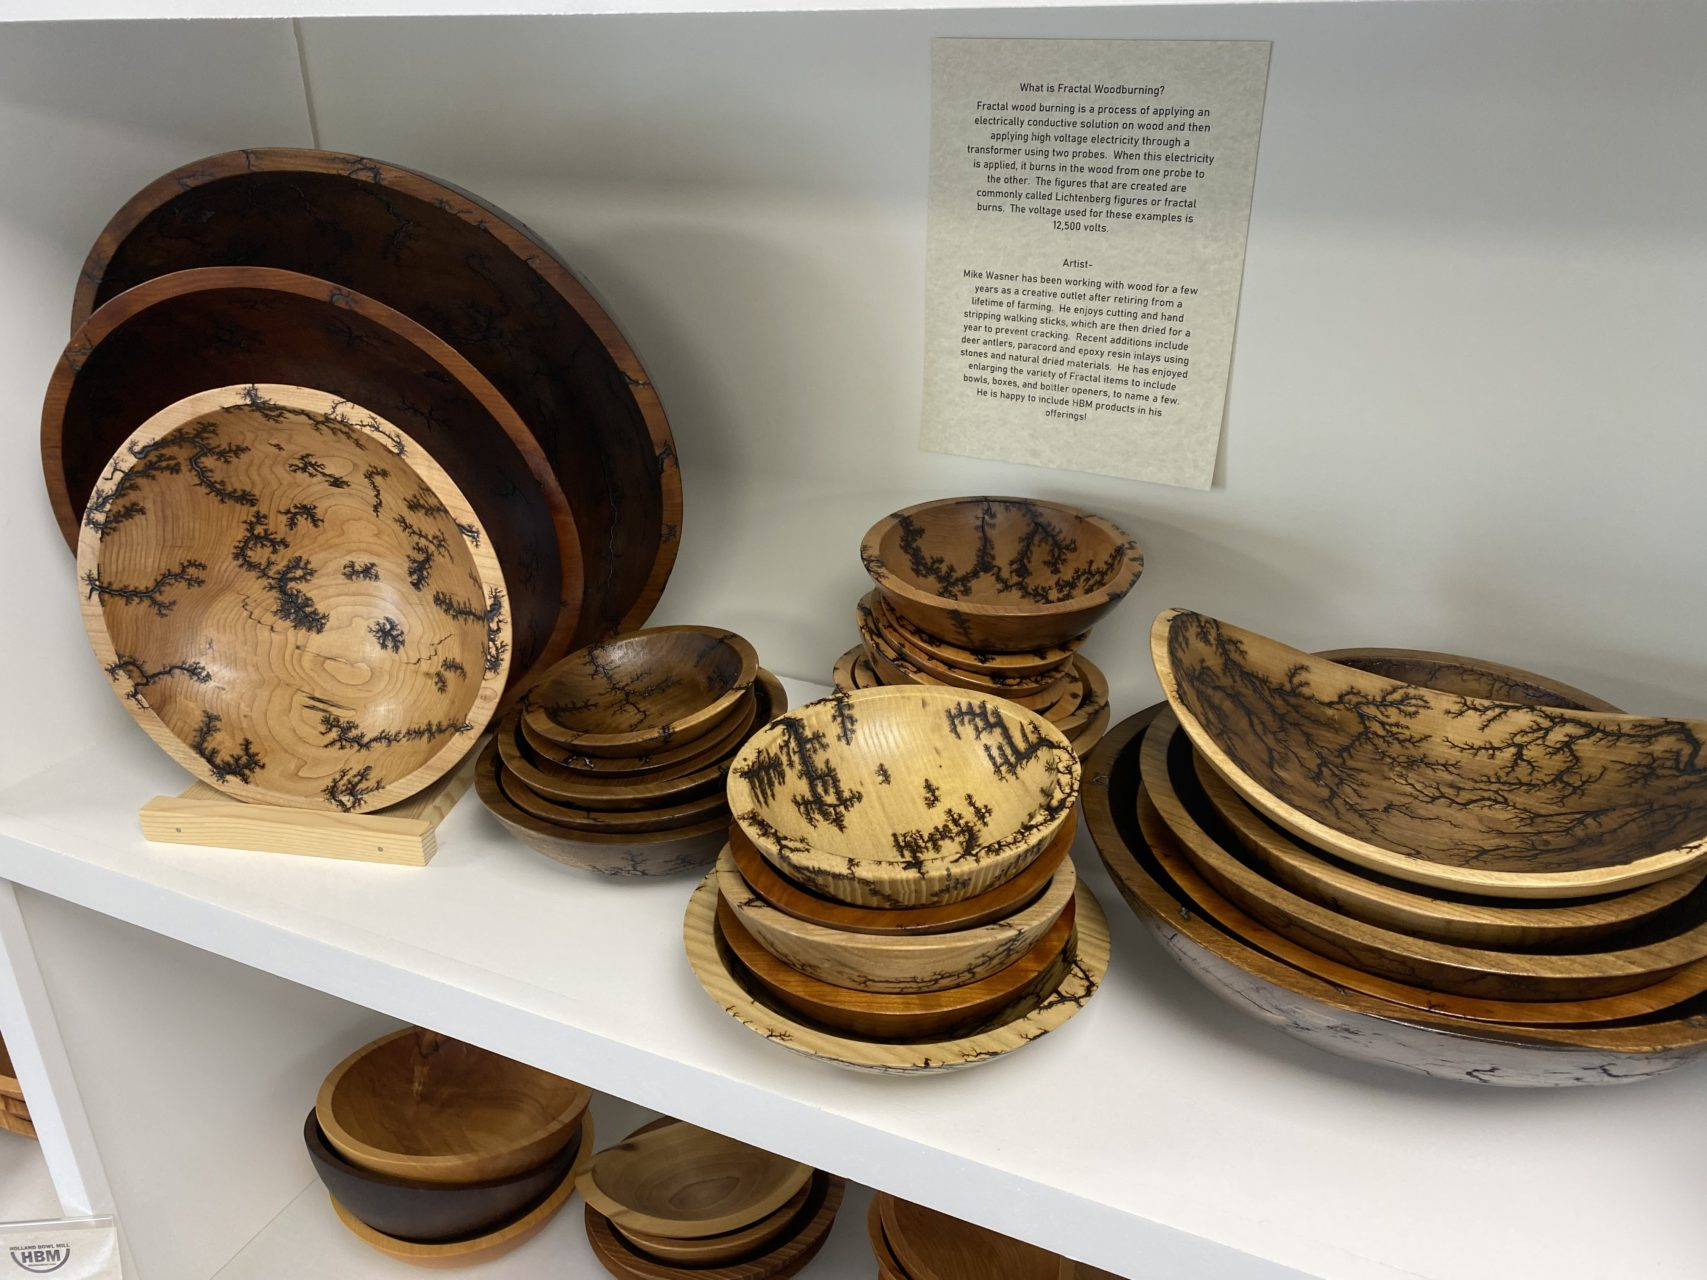 Fractal wood burning bowls on display in the Holland Bowl Mill showroom.